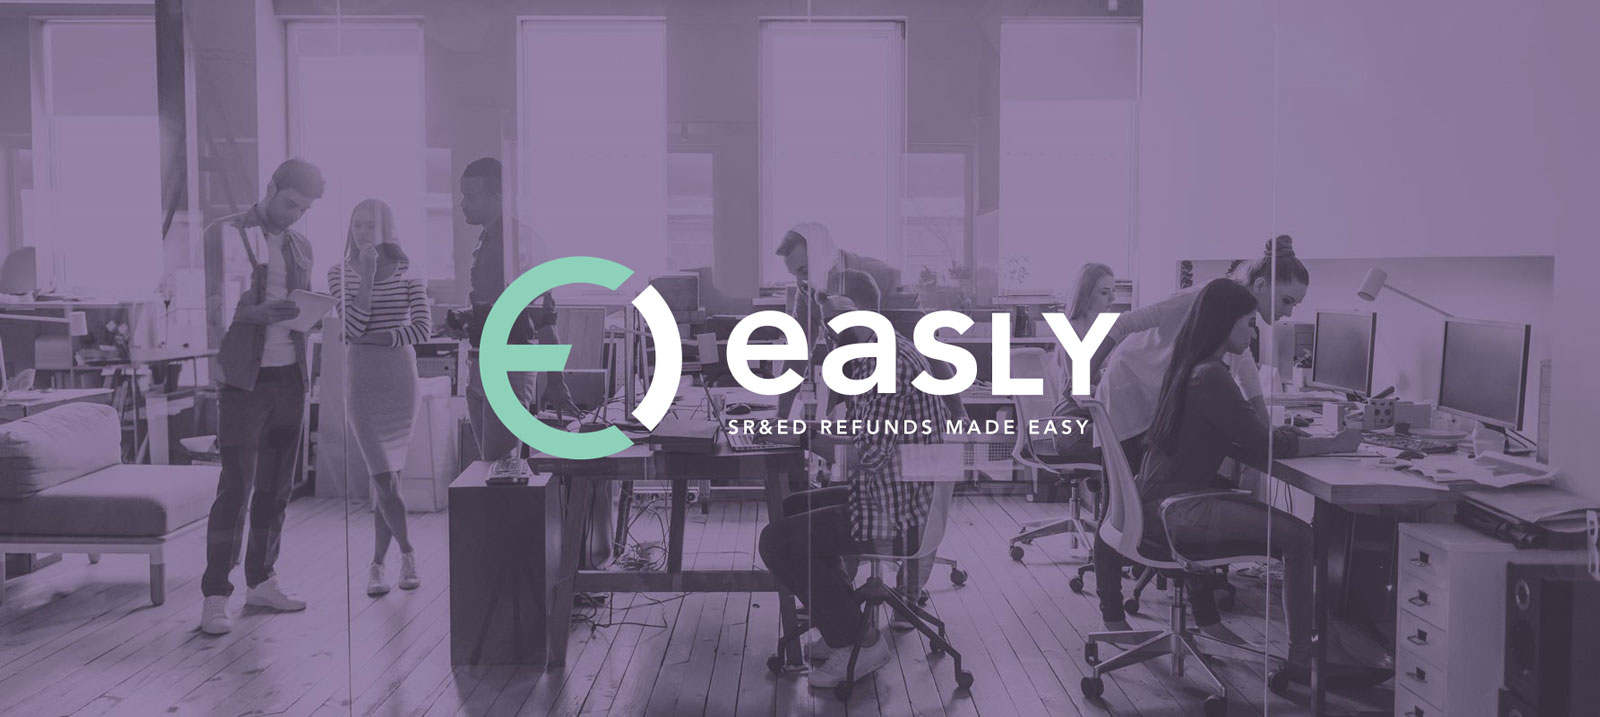 Introducing Easly, formerly known as Rapid Capital.